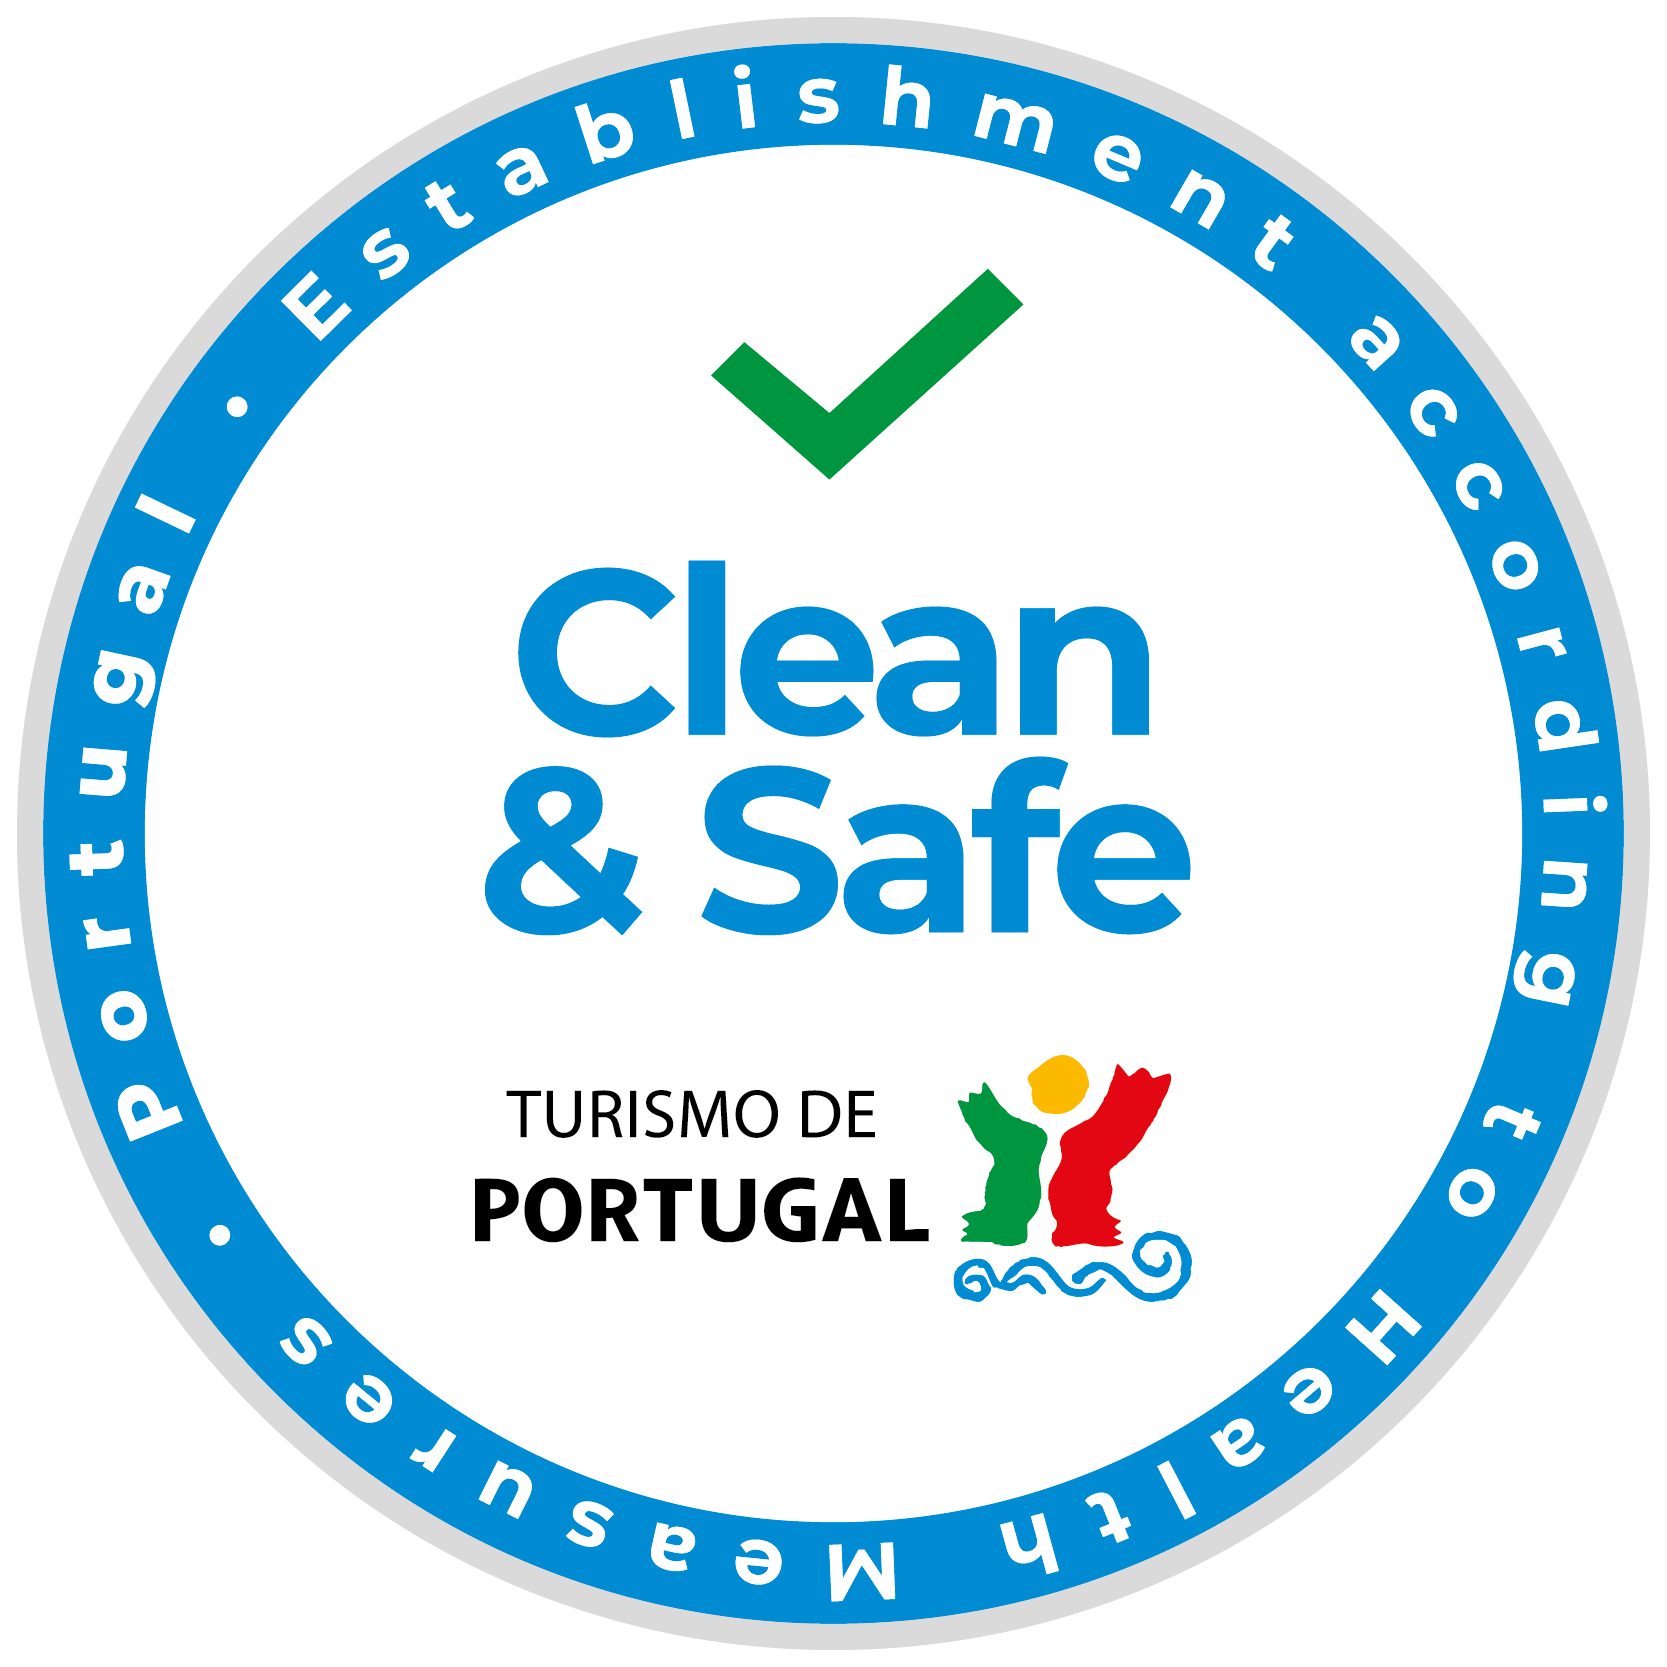 Turismo de Portugal clean and safe logo